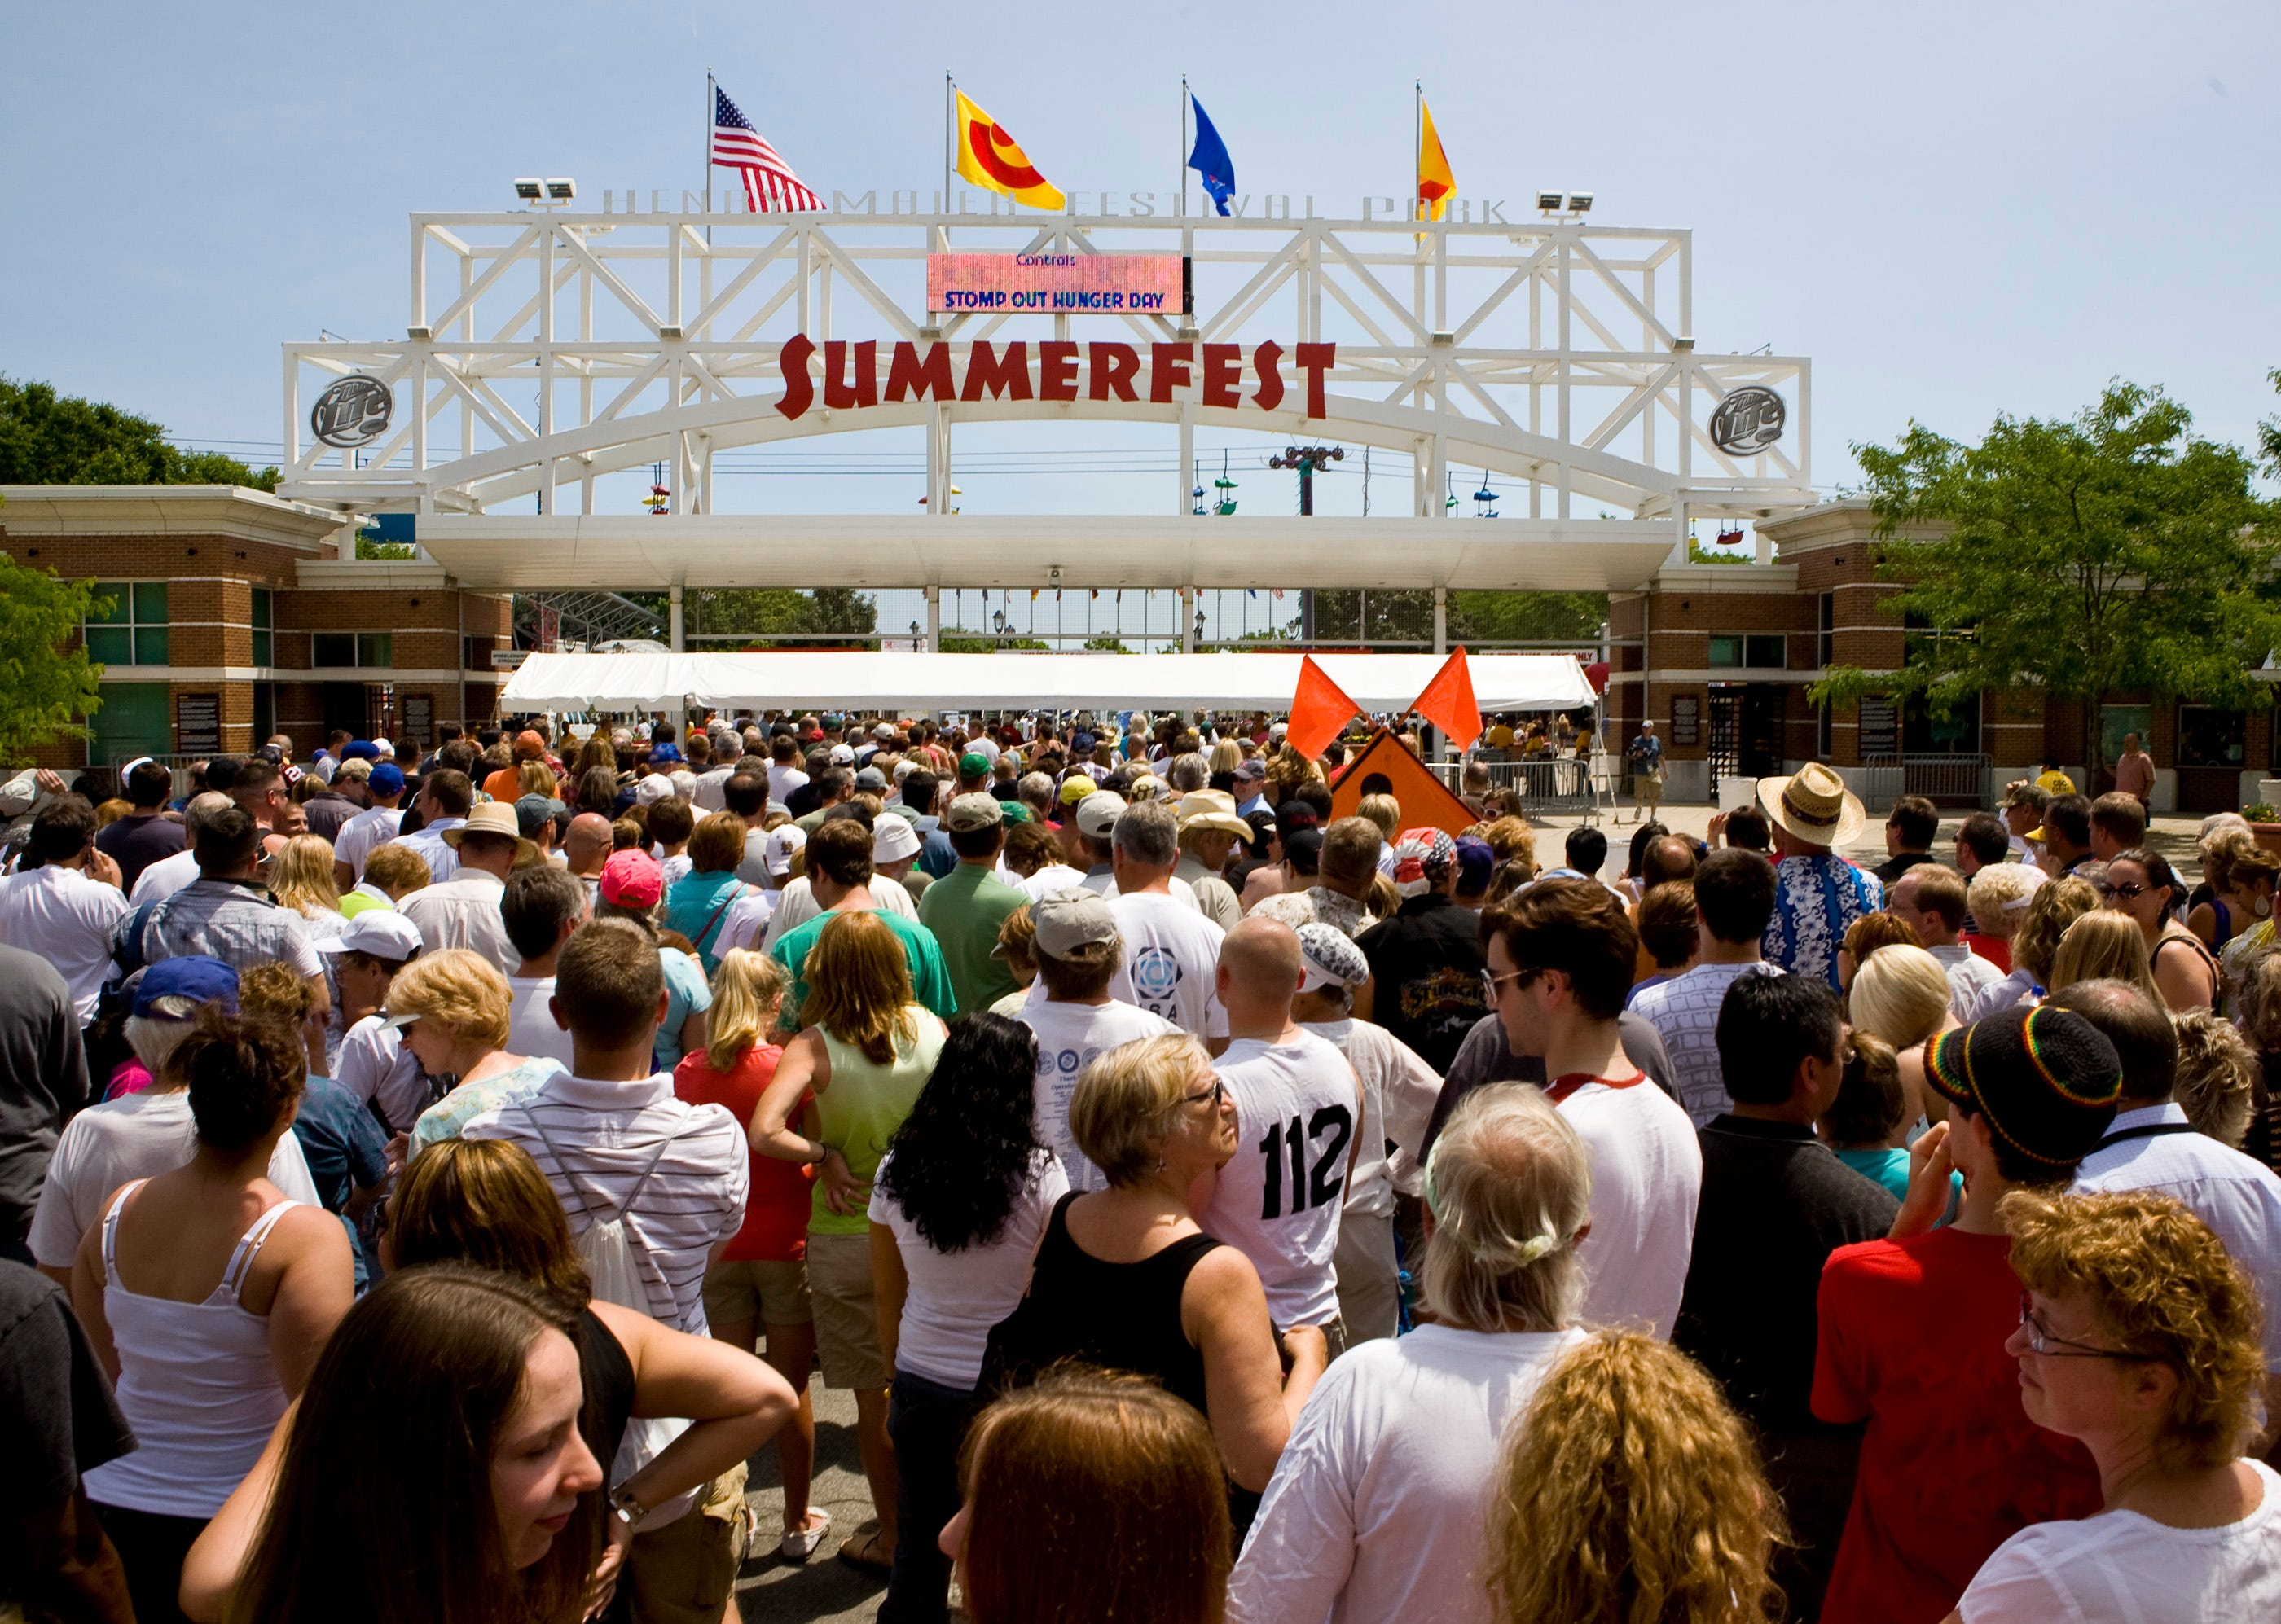 Klement's links up with Summerfest for a 10-year sponsorship deal   Milwaukee Journal Sentinel